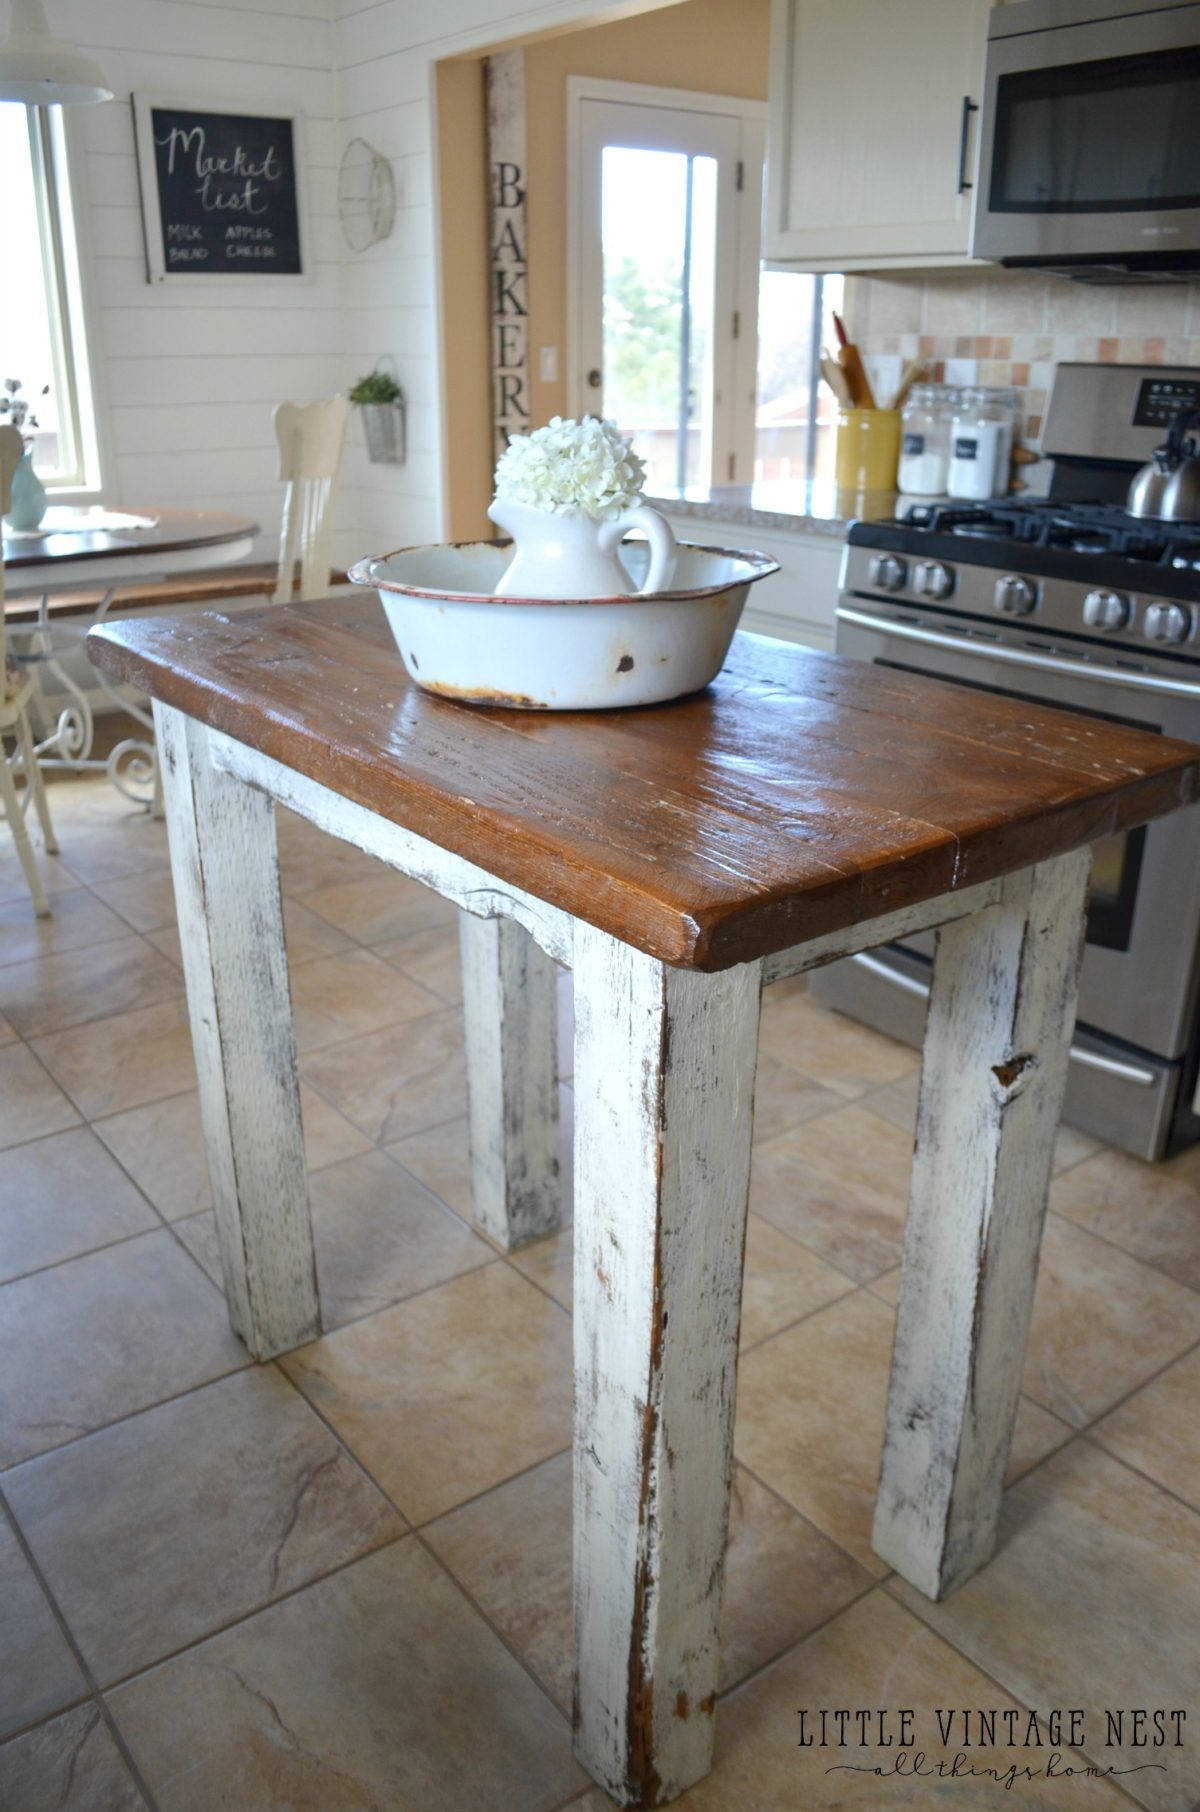 Rustic Stools Kitchens Rustic Kitchen Island Little Vintage Nest